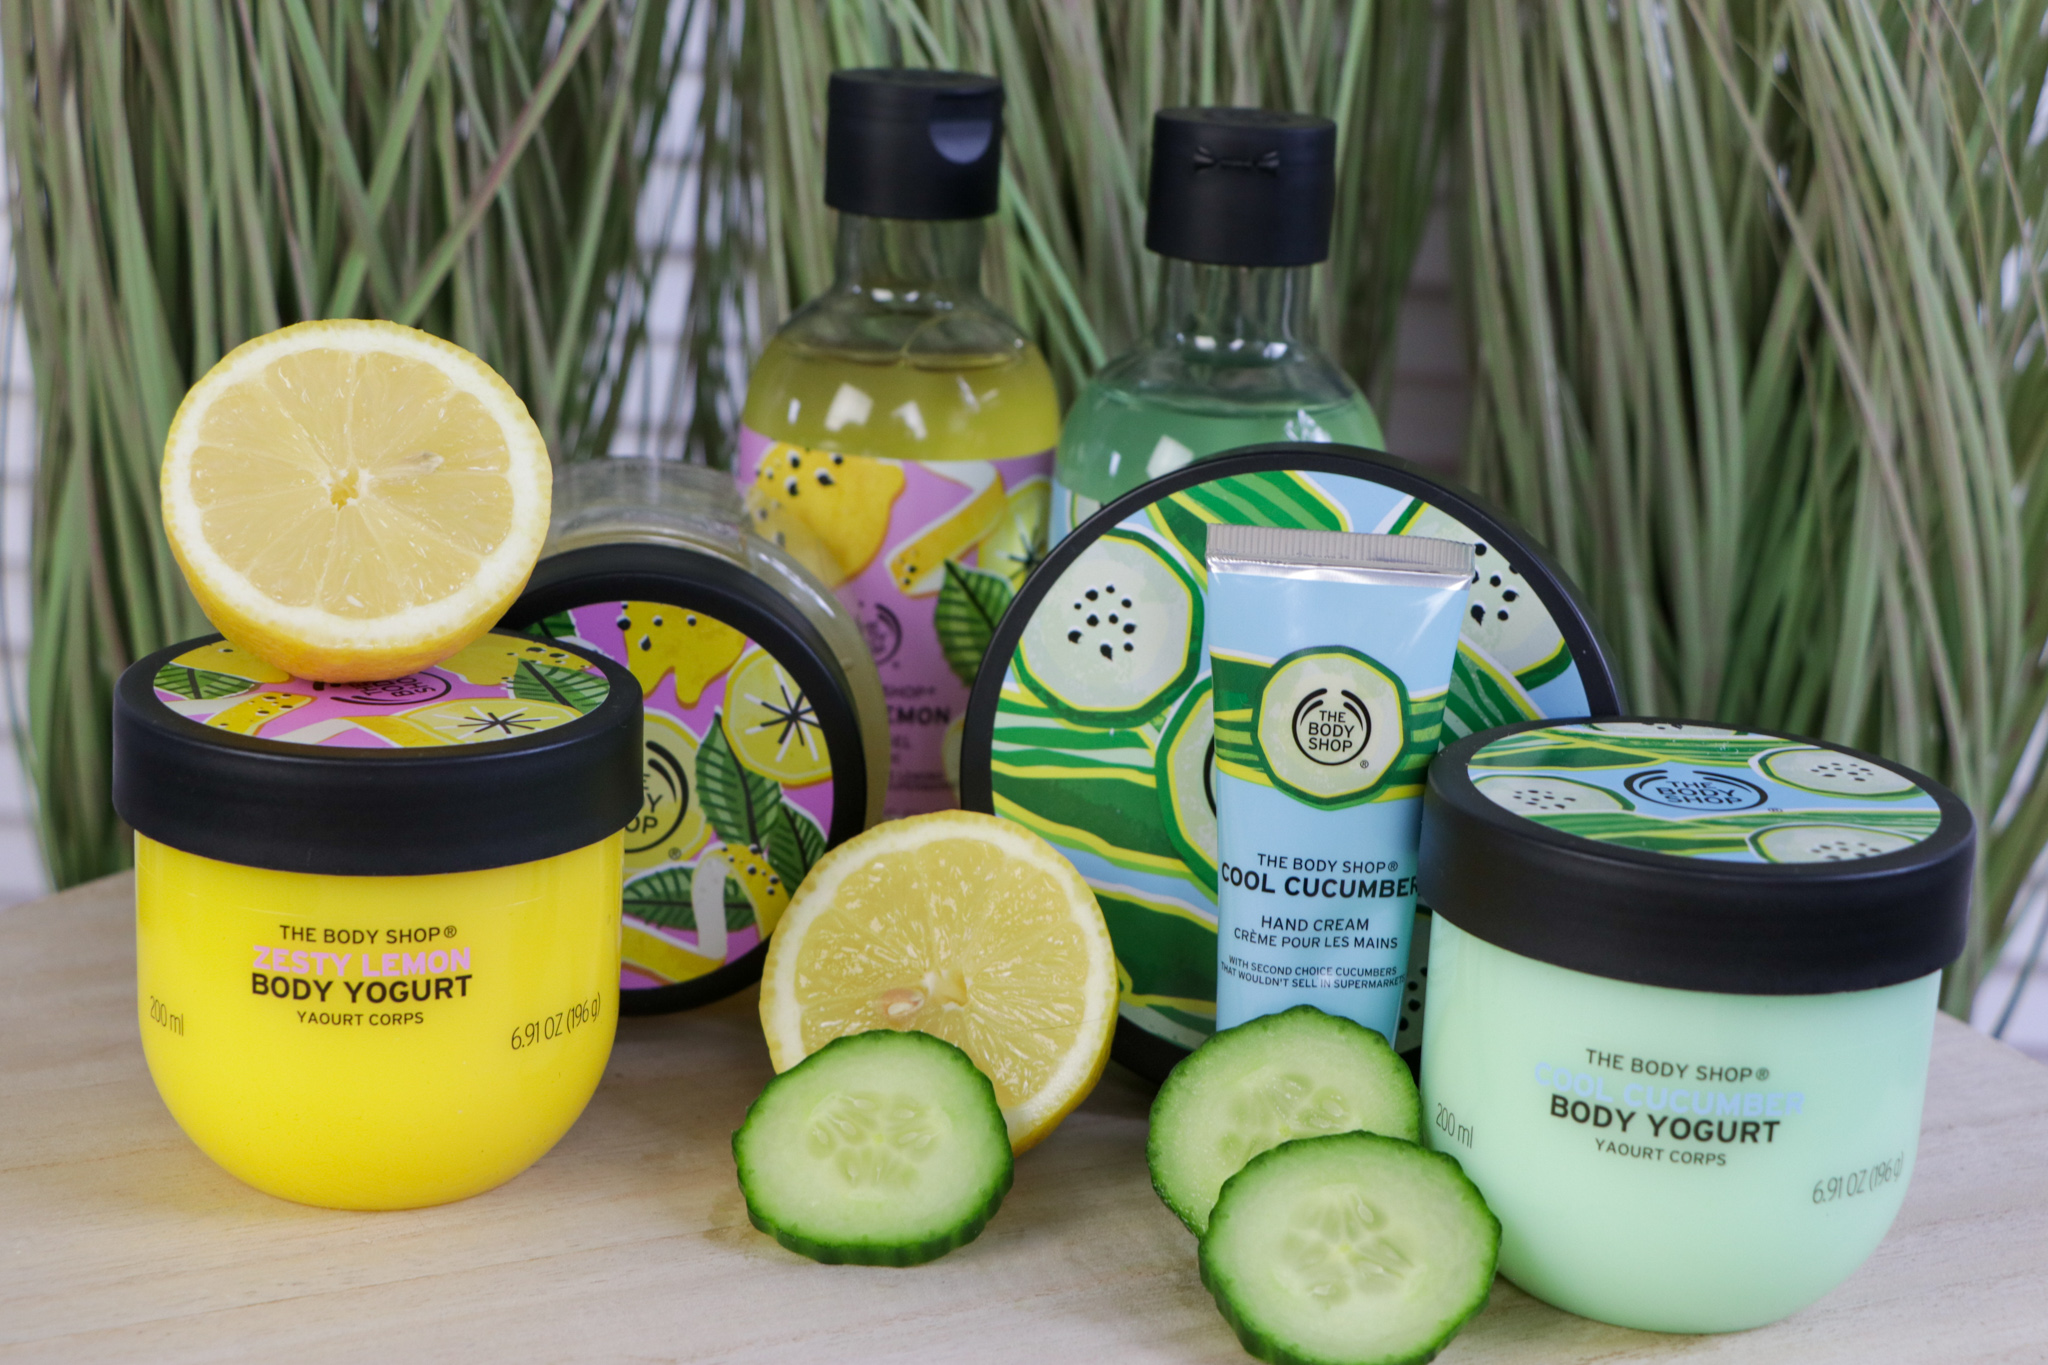 The Bodyshop Zesty Lemon & Cool Cucumber